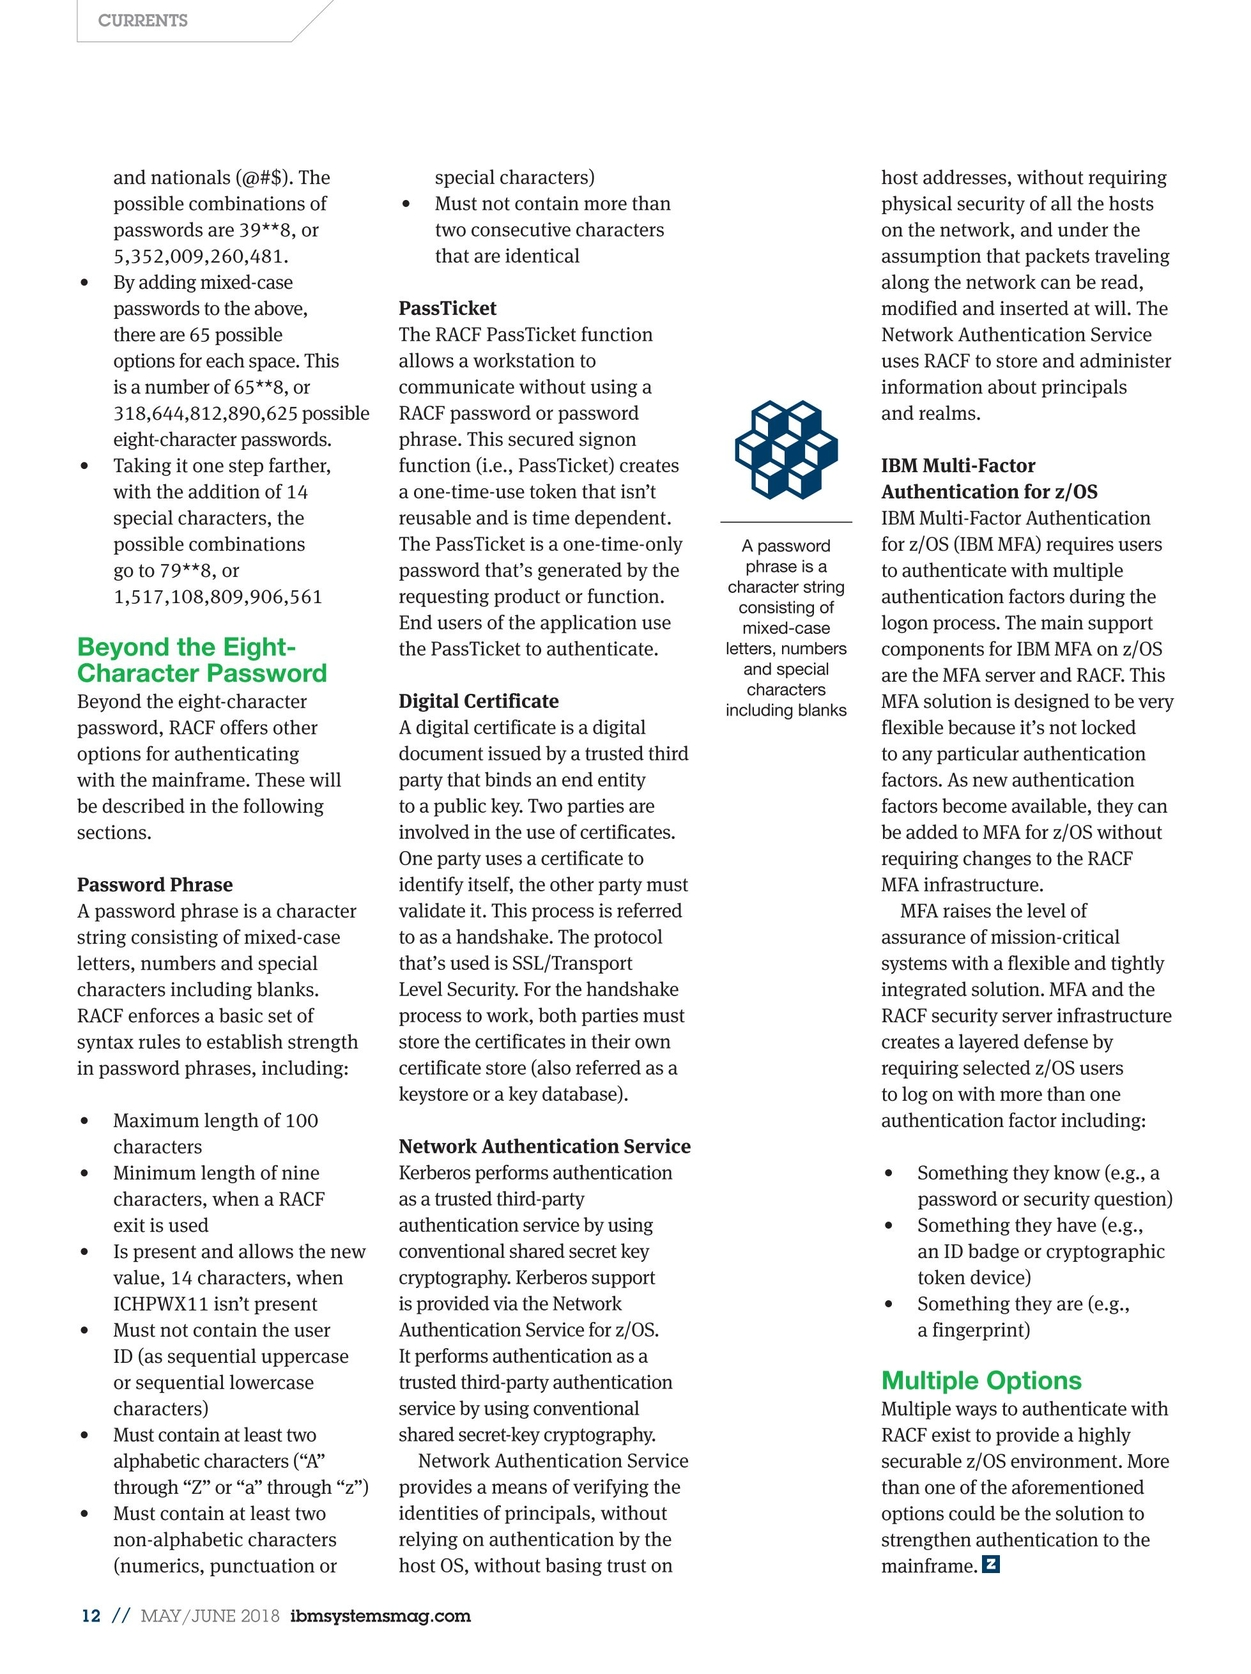 IBM Systems Magazine, Mainframe - May/June 2018